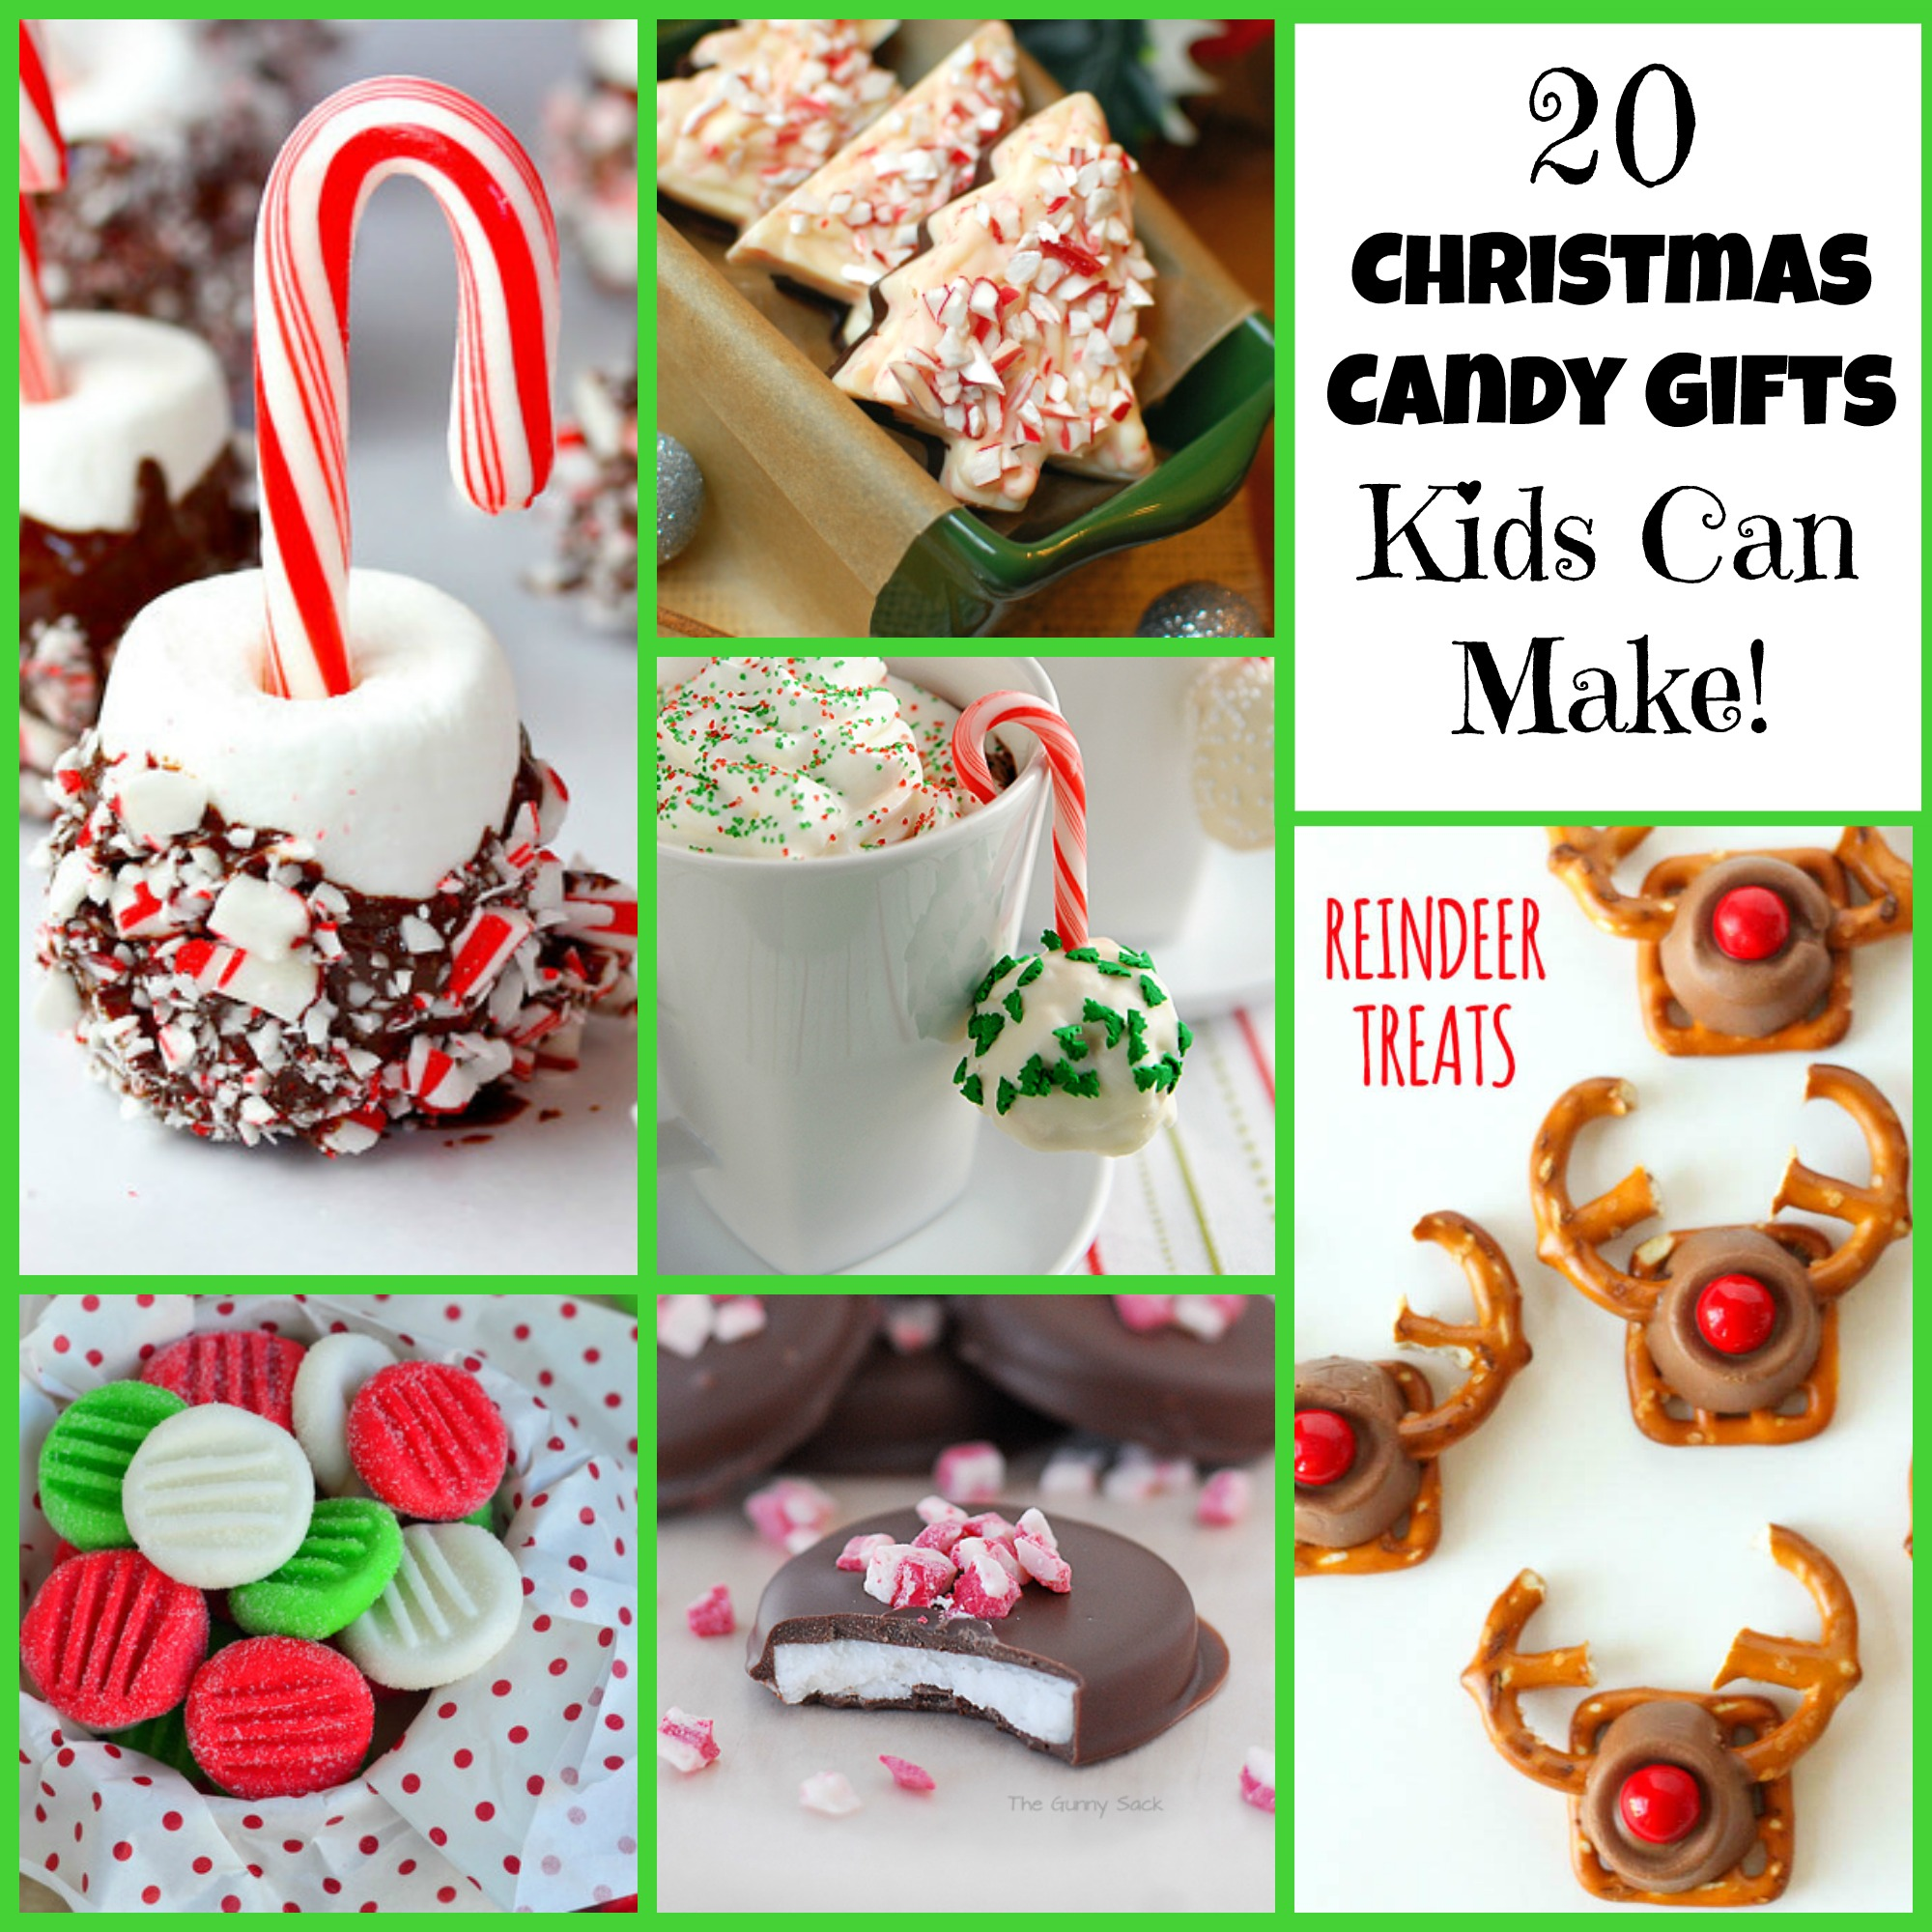 20 Christmas Candy Gifts Kids Can Make